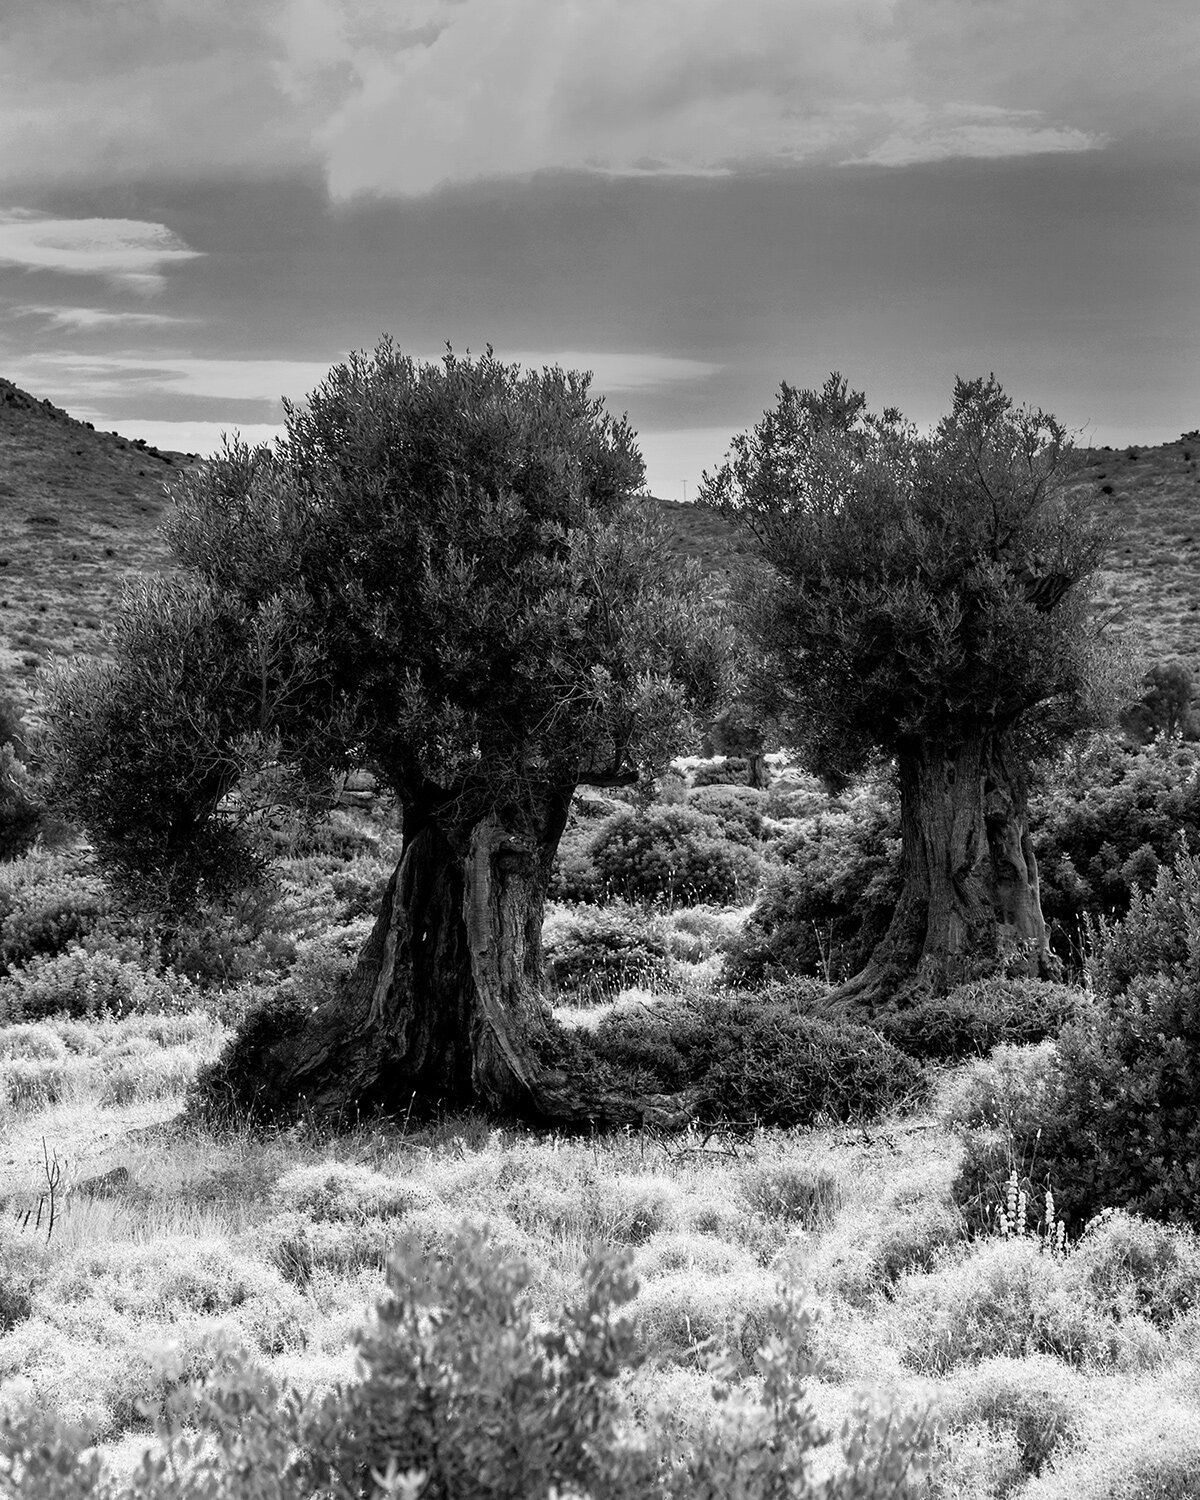 Jerome Clark,  Two Olive Trees,  2019, inkjet on archival paper, 8 x 10 inches, 13 x 16 inches framed